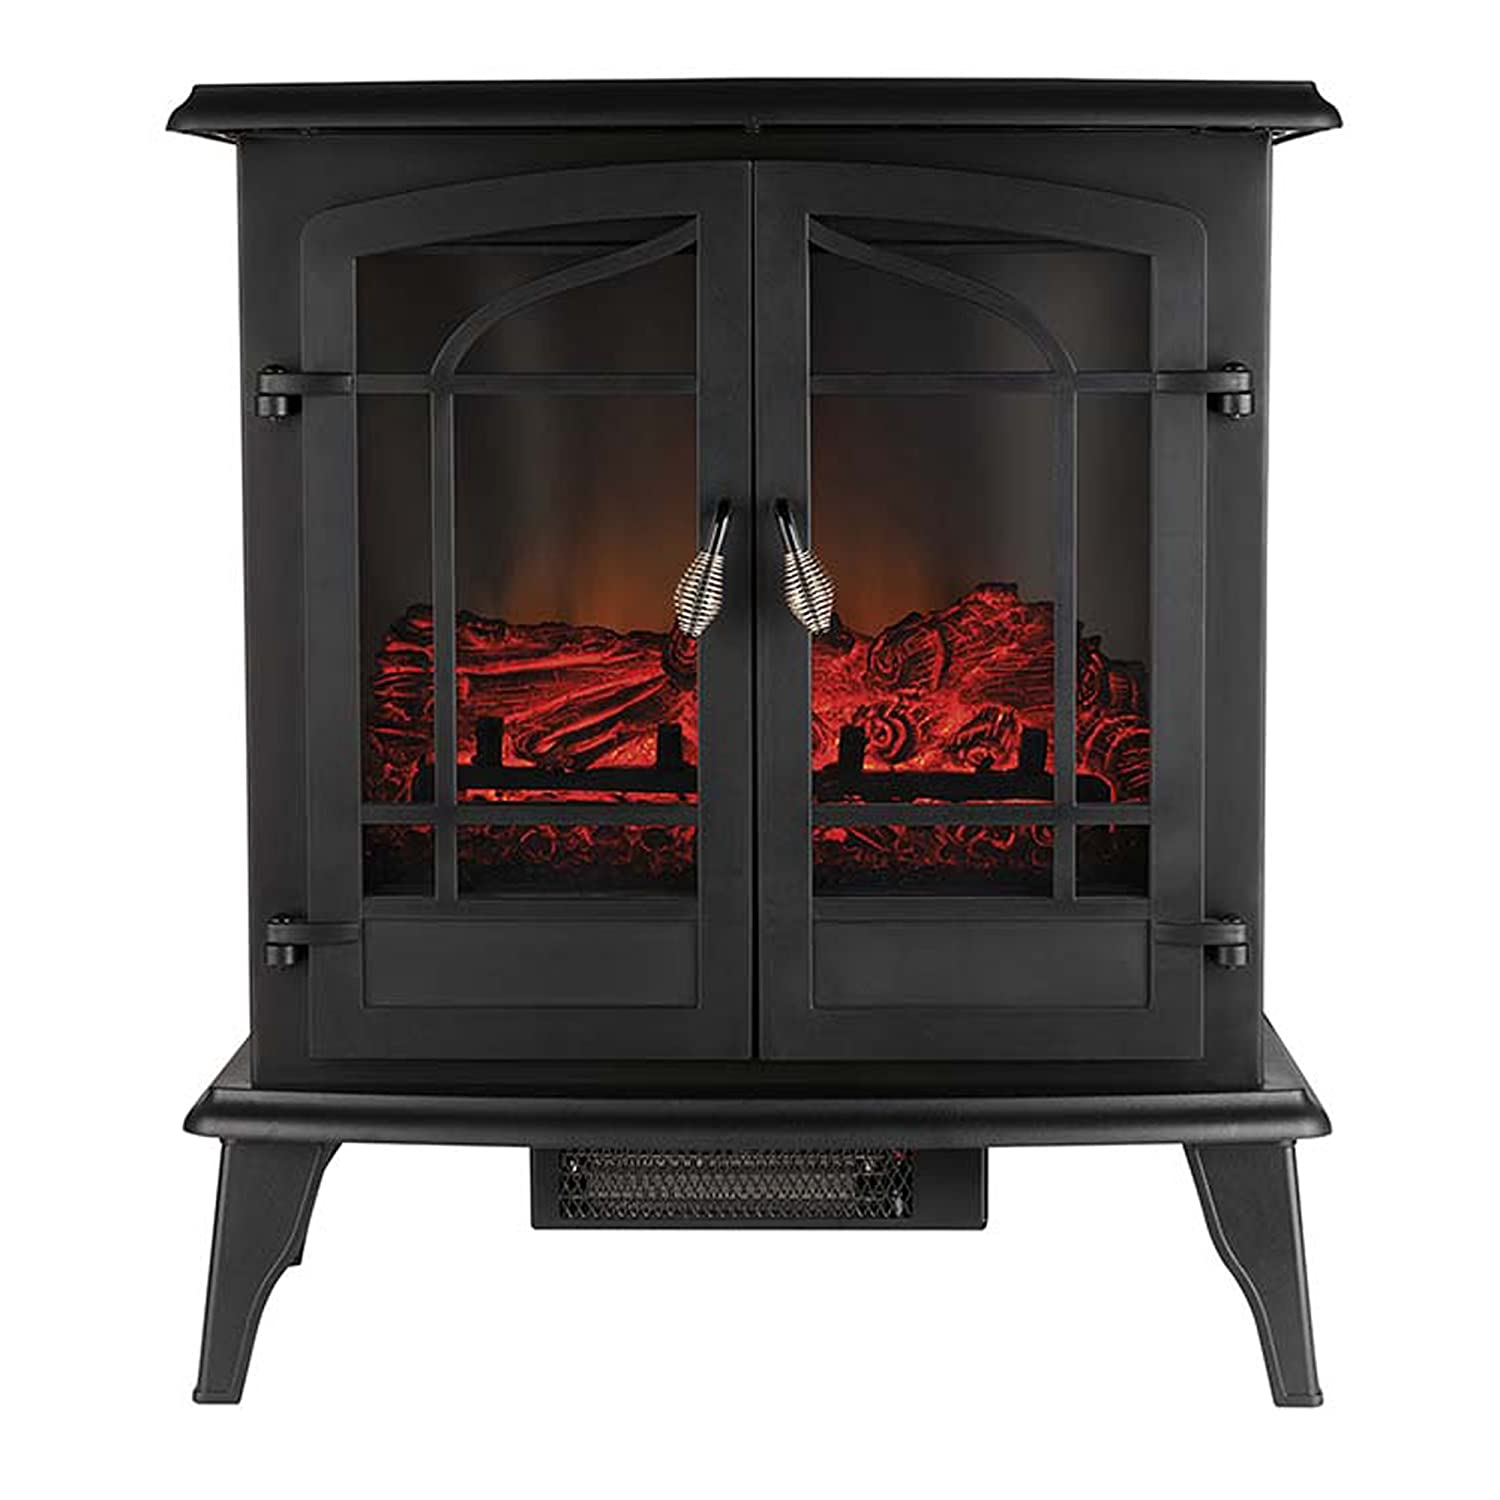 Beldray EH0985 Alcudia Panoramic Electric Stove with Led Flame Effect, 1500 W, 25